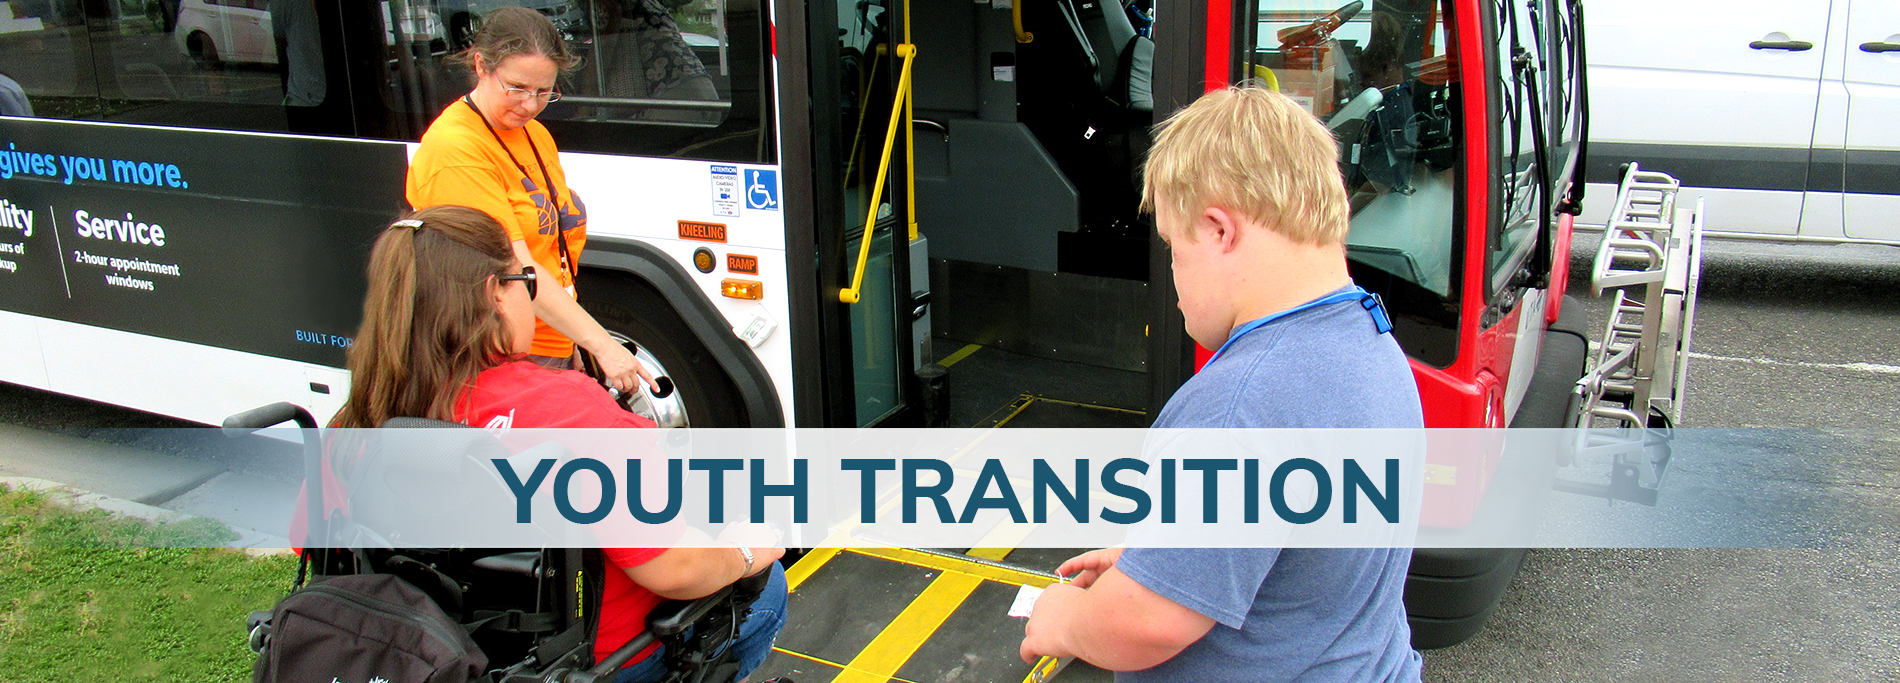 Youth Transition - Header